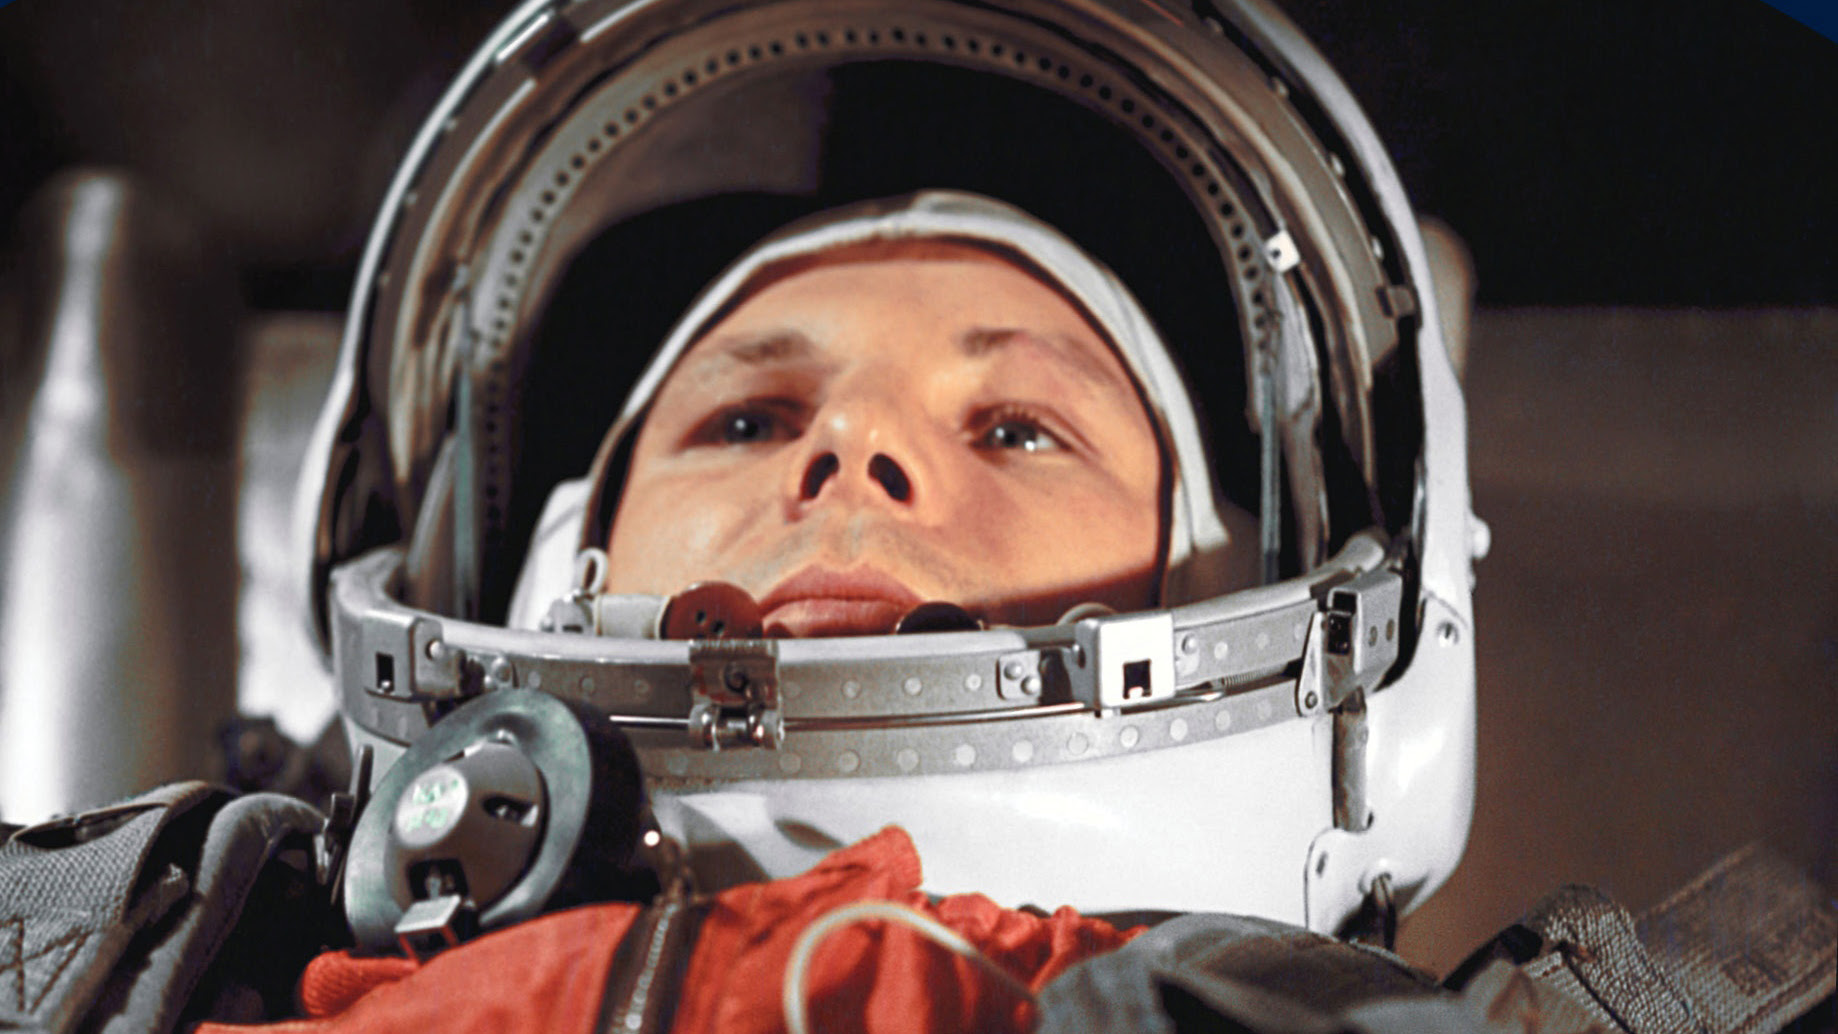 Stepping into the 'Beyond': New book celebrates 60th anniversary of first man in space